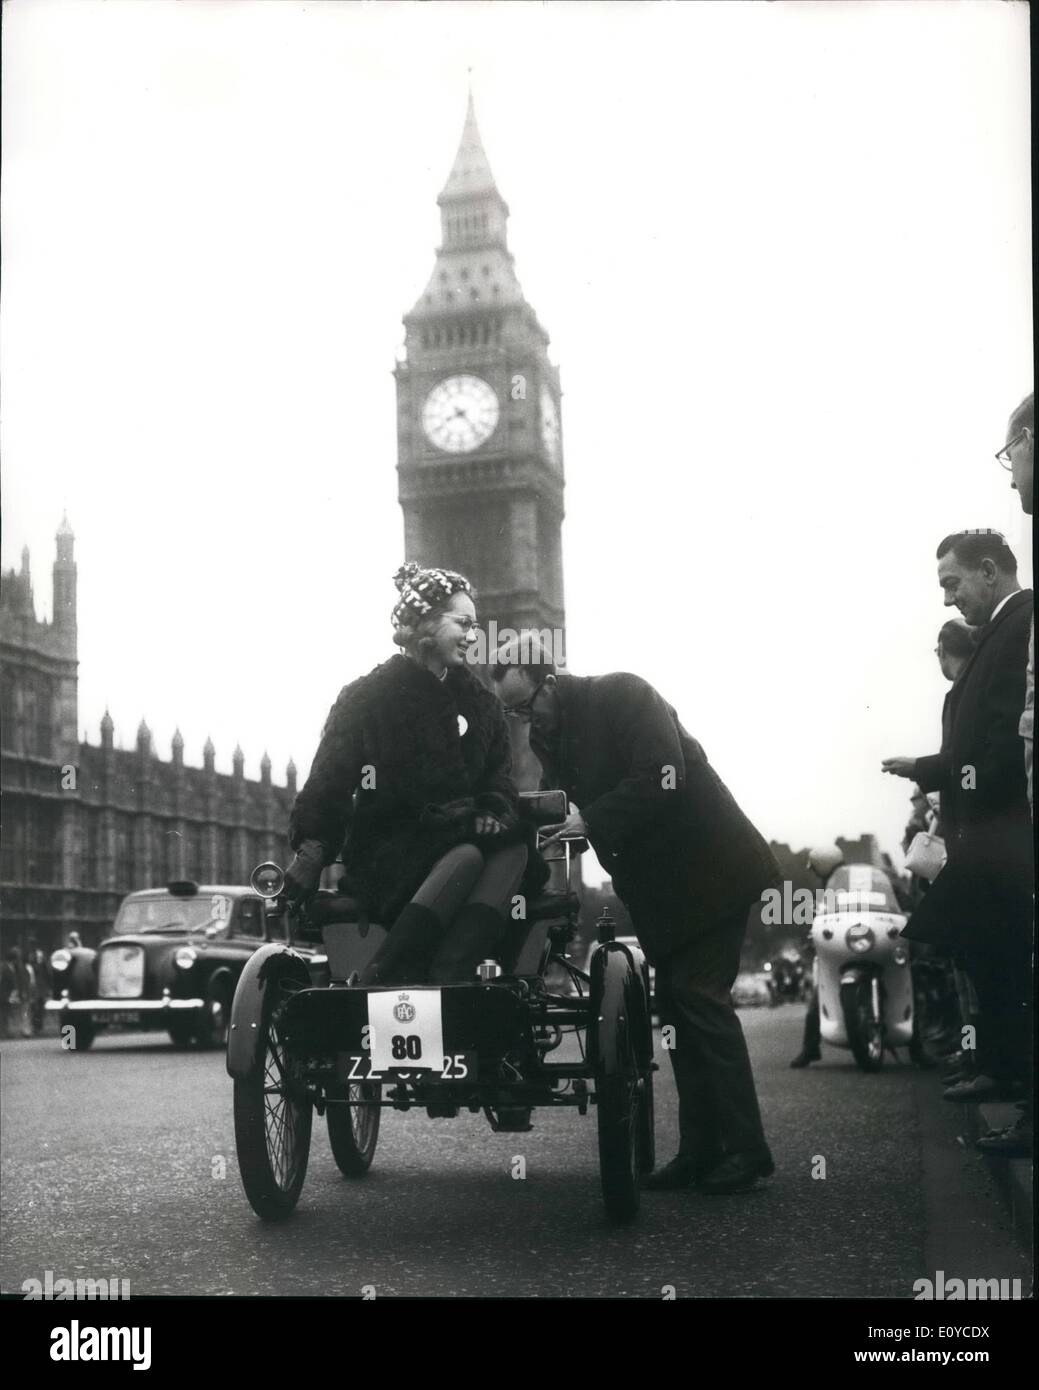 Nov. 11, 1969 - The Veteran Car Club's London To Brighton Run: The annual R.A.C.'s Veteran Car Run to Brighton took place today. The competitors moved off from Hyde Park for the 50 mile Journey to Brighton. Photo Shows A breakdown in the shadow of Big. Ben. Mr.C.T. Steffelaur gets to work on his 1901 De Dion Bouton after it ran in to a spot of trouble on Westminster Bridge this morning. - Stock Image